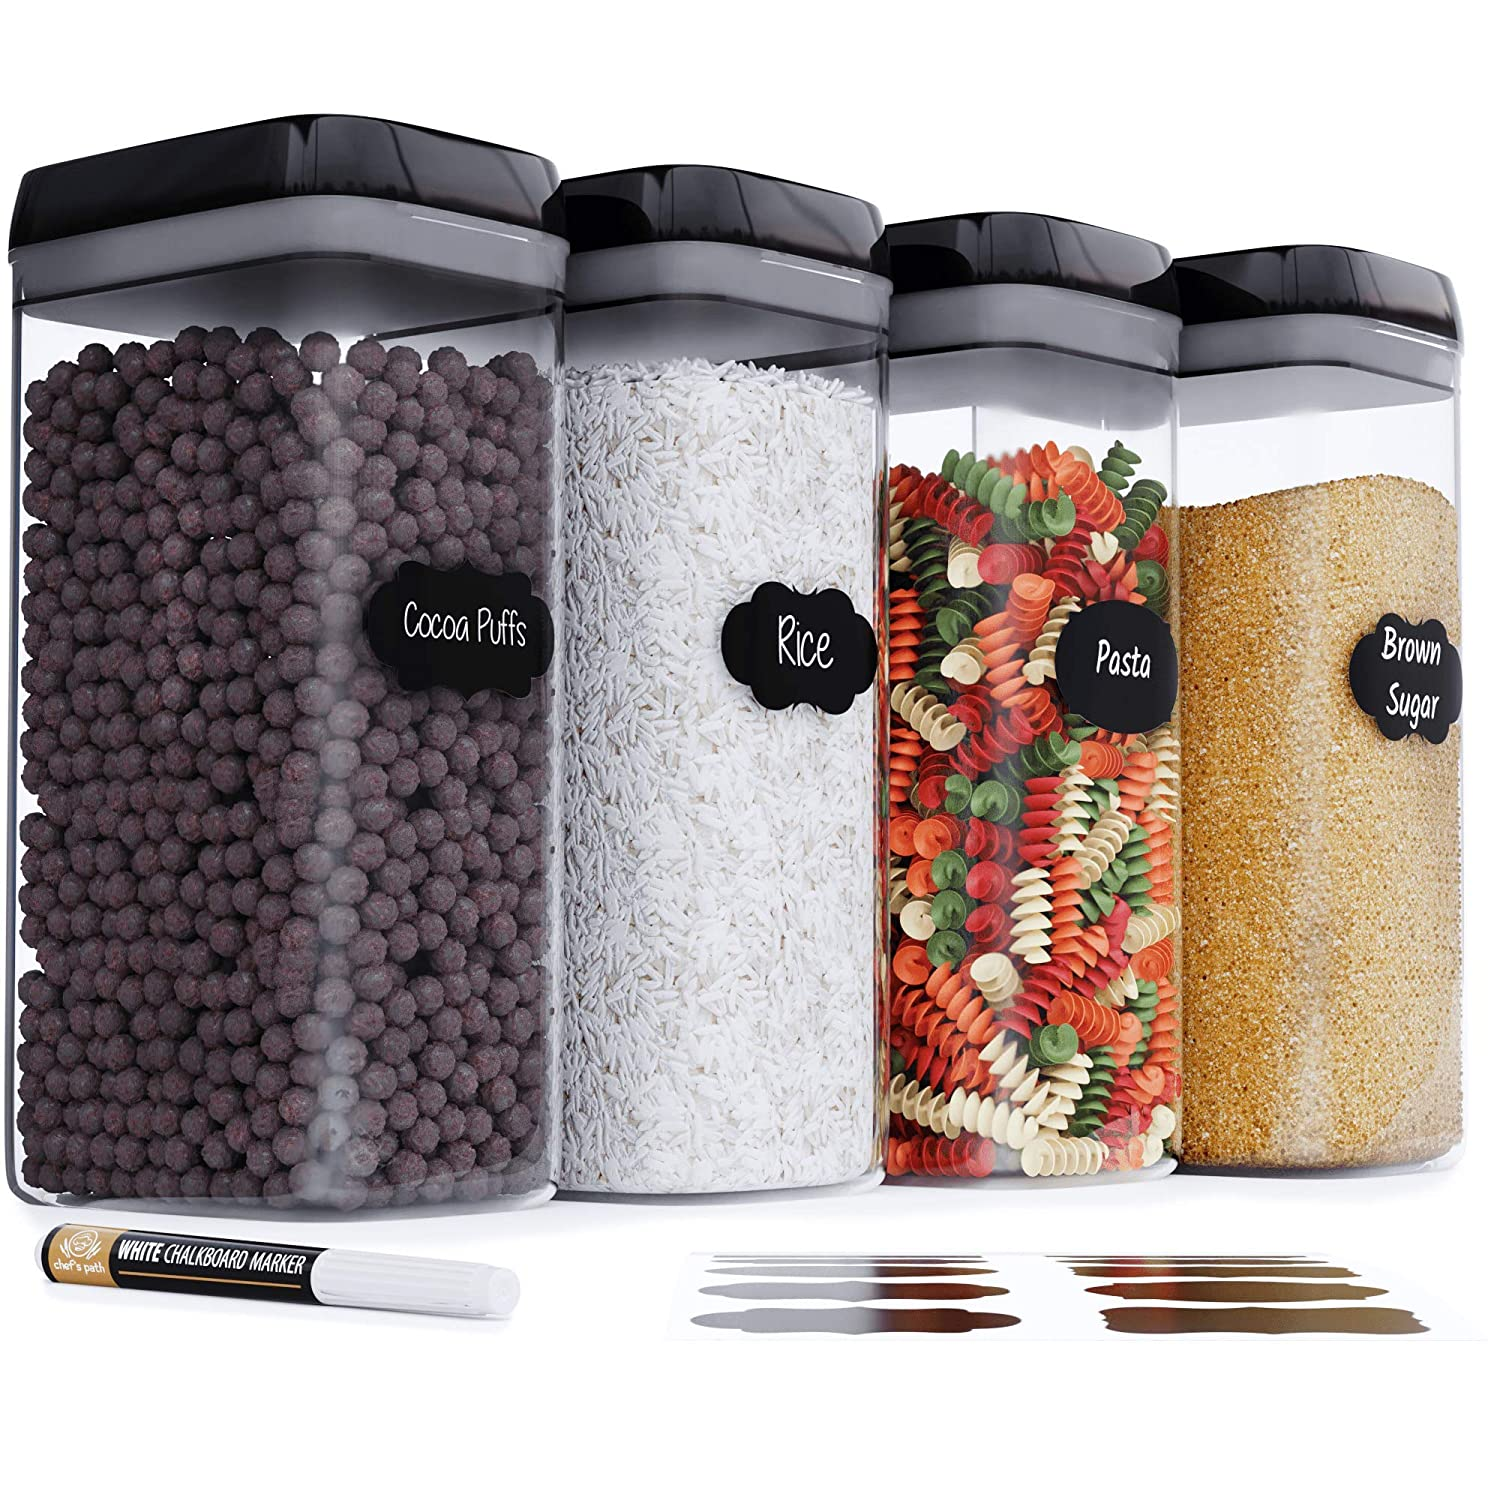 Chef's Path Airtight Extra Large Food Storage Container - 4 PC Set/All Same Size - Kitchen & Pantry Dry Food Containers - Ideal for Spaghetti, Noodles and Pasta - Clear Plastic Canisters with Lids